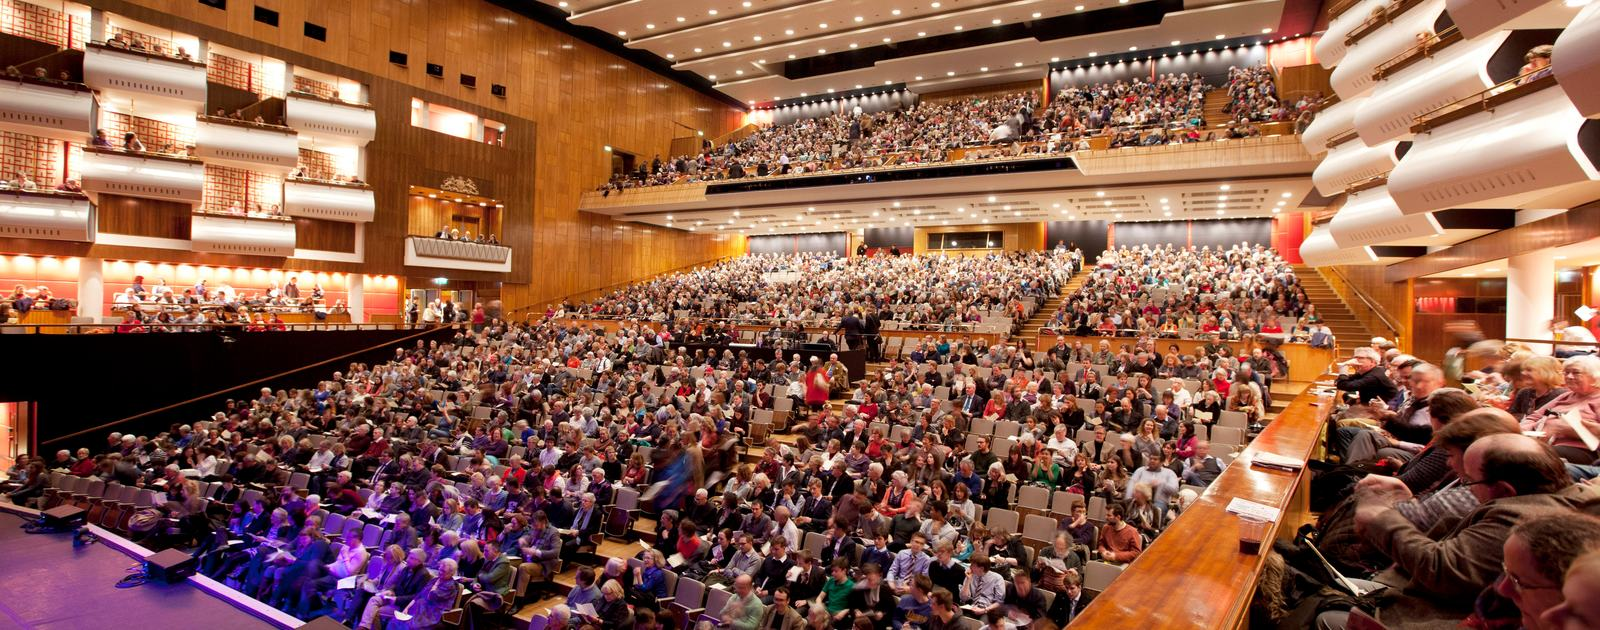 Sold out literature audience_Southbank Centre's London Literature Festival_CREDIT Belinda Lawley 2000